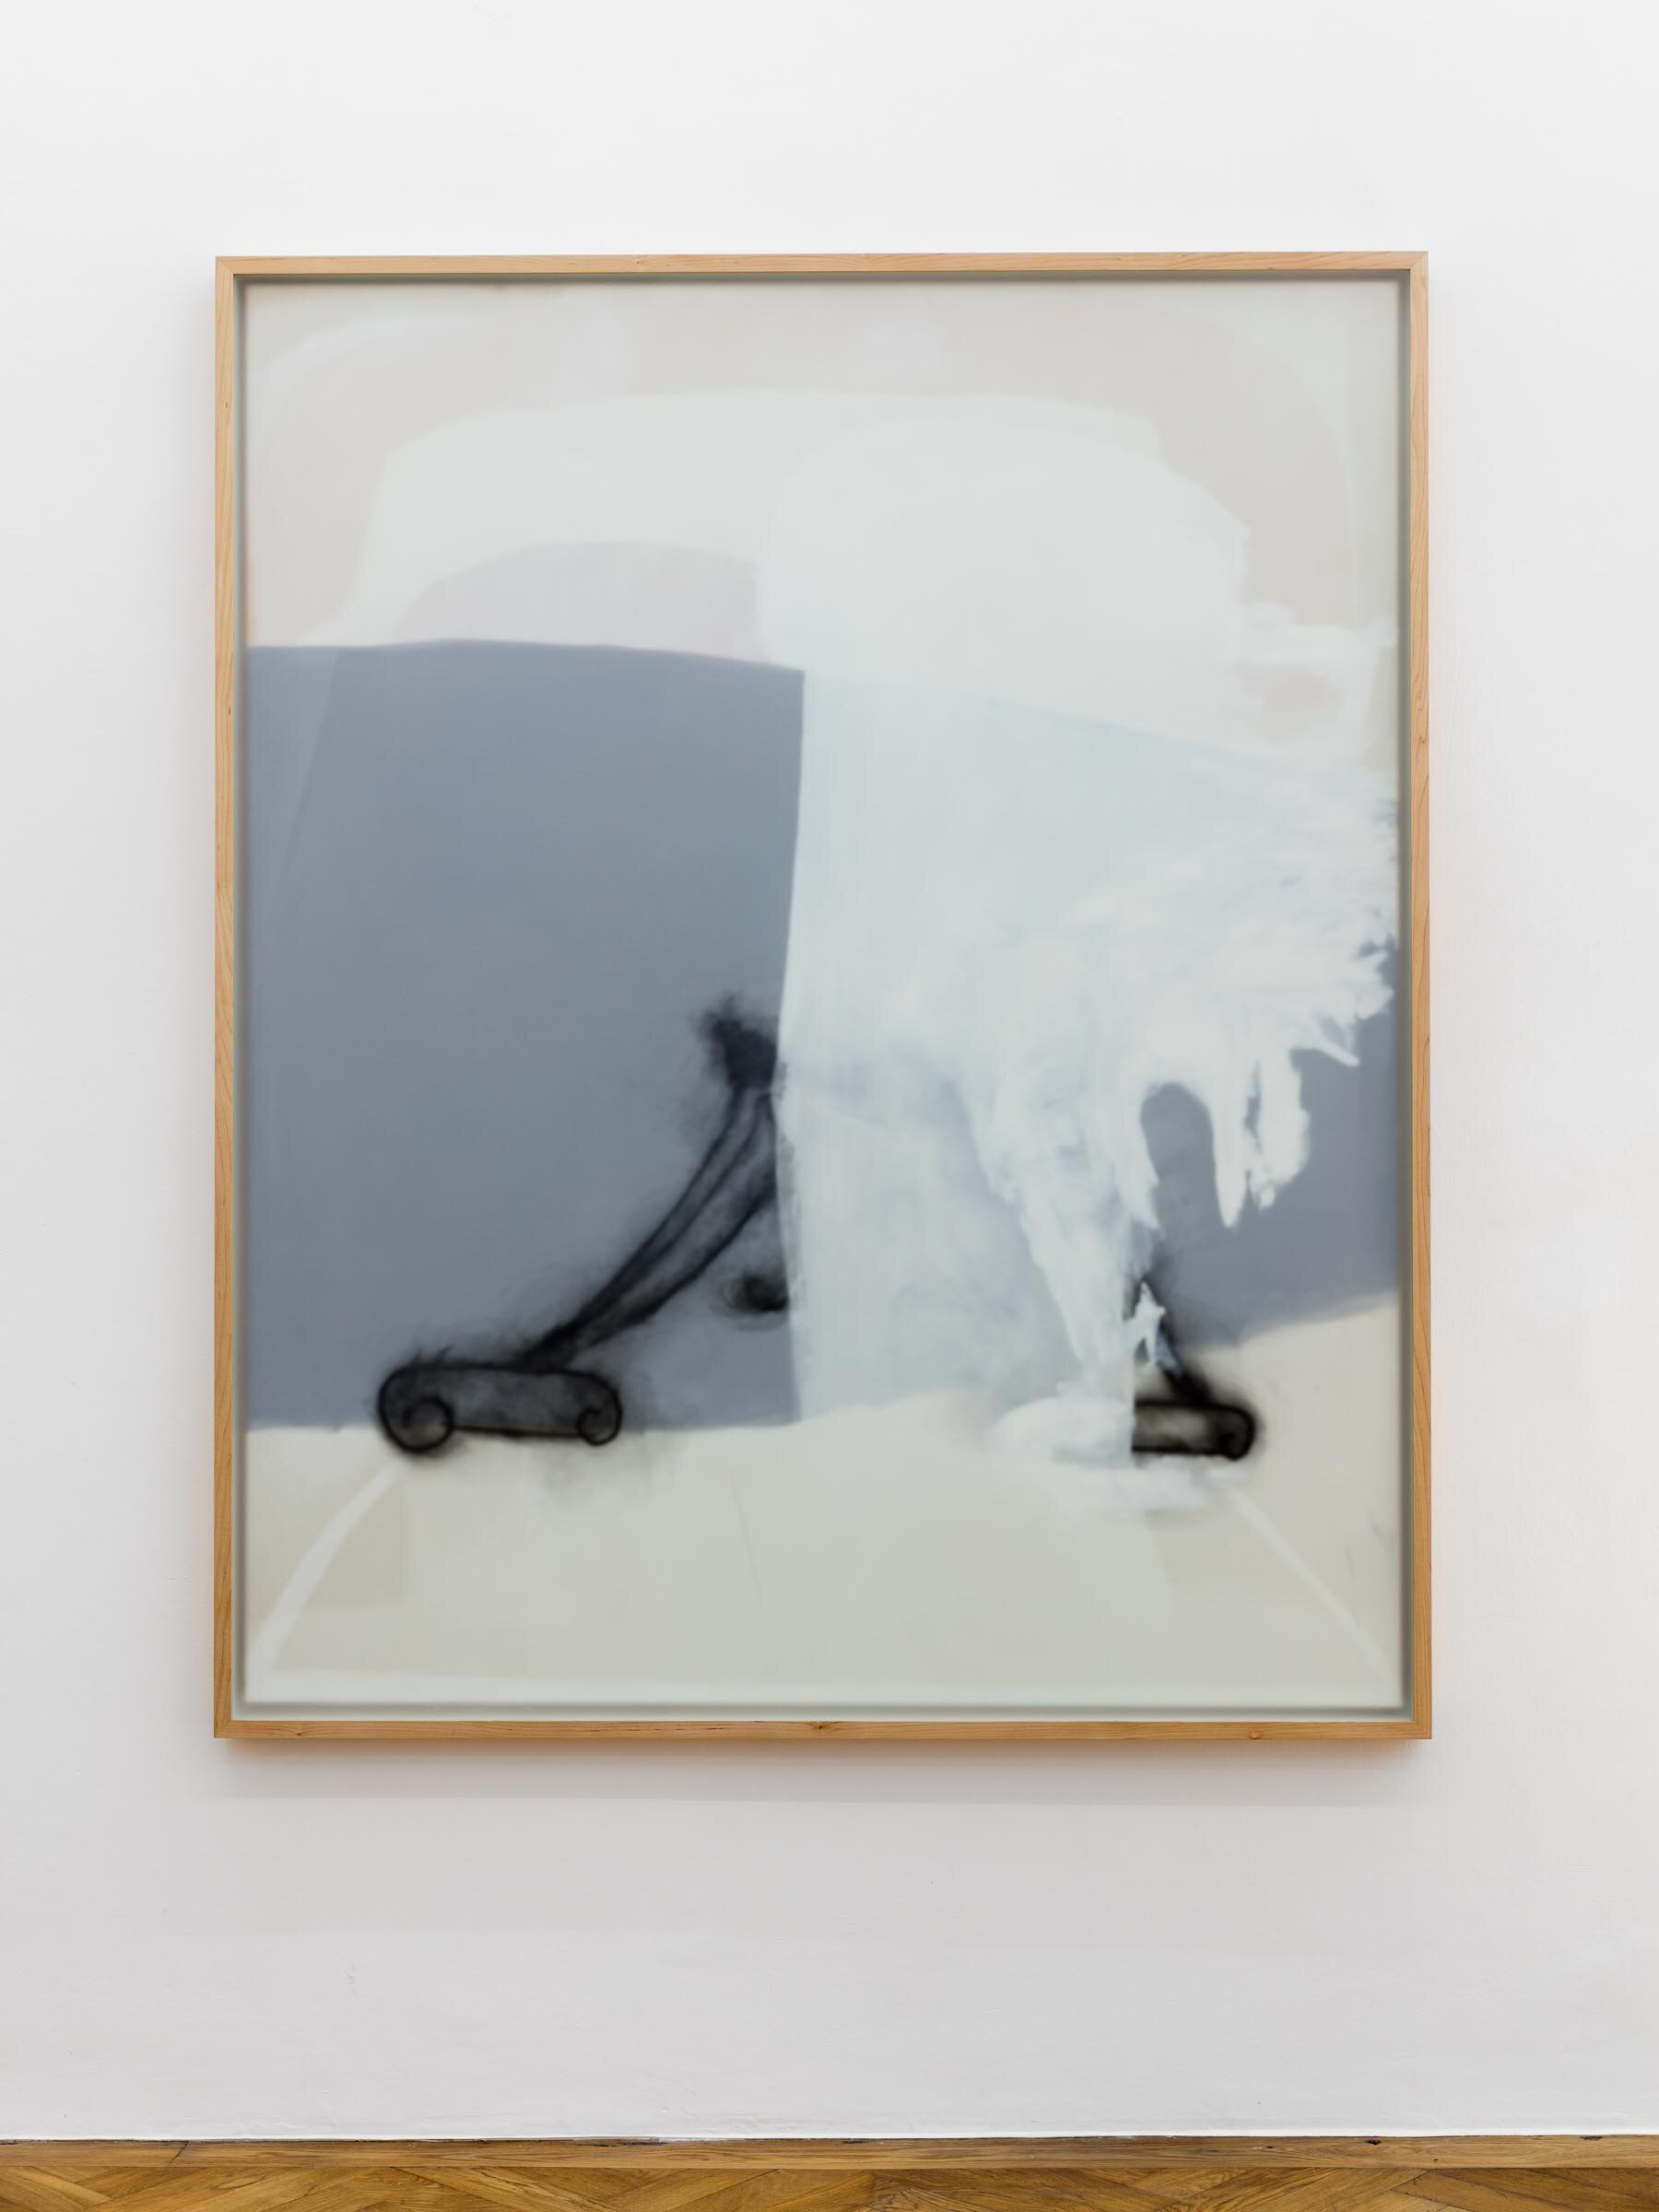 Malte Zenses, Orgelblut, 2019, oil and pencil on canvas, opal glass and maple wood, 136 x 166 cm